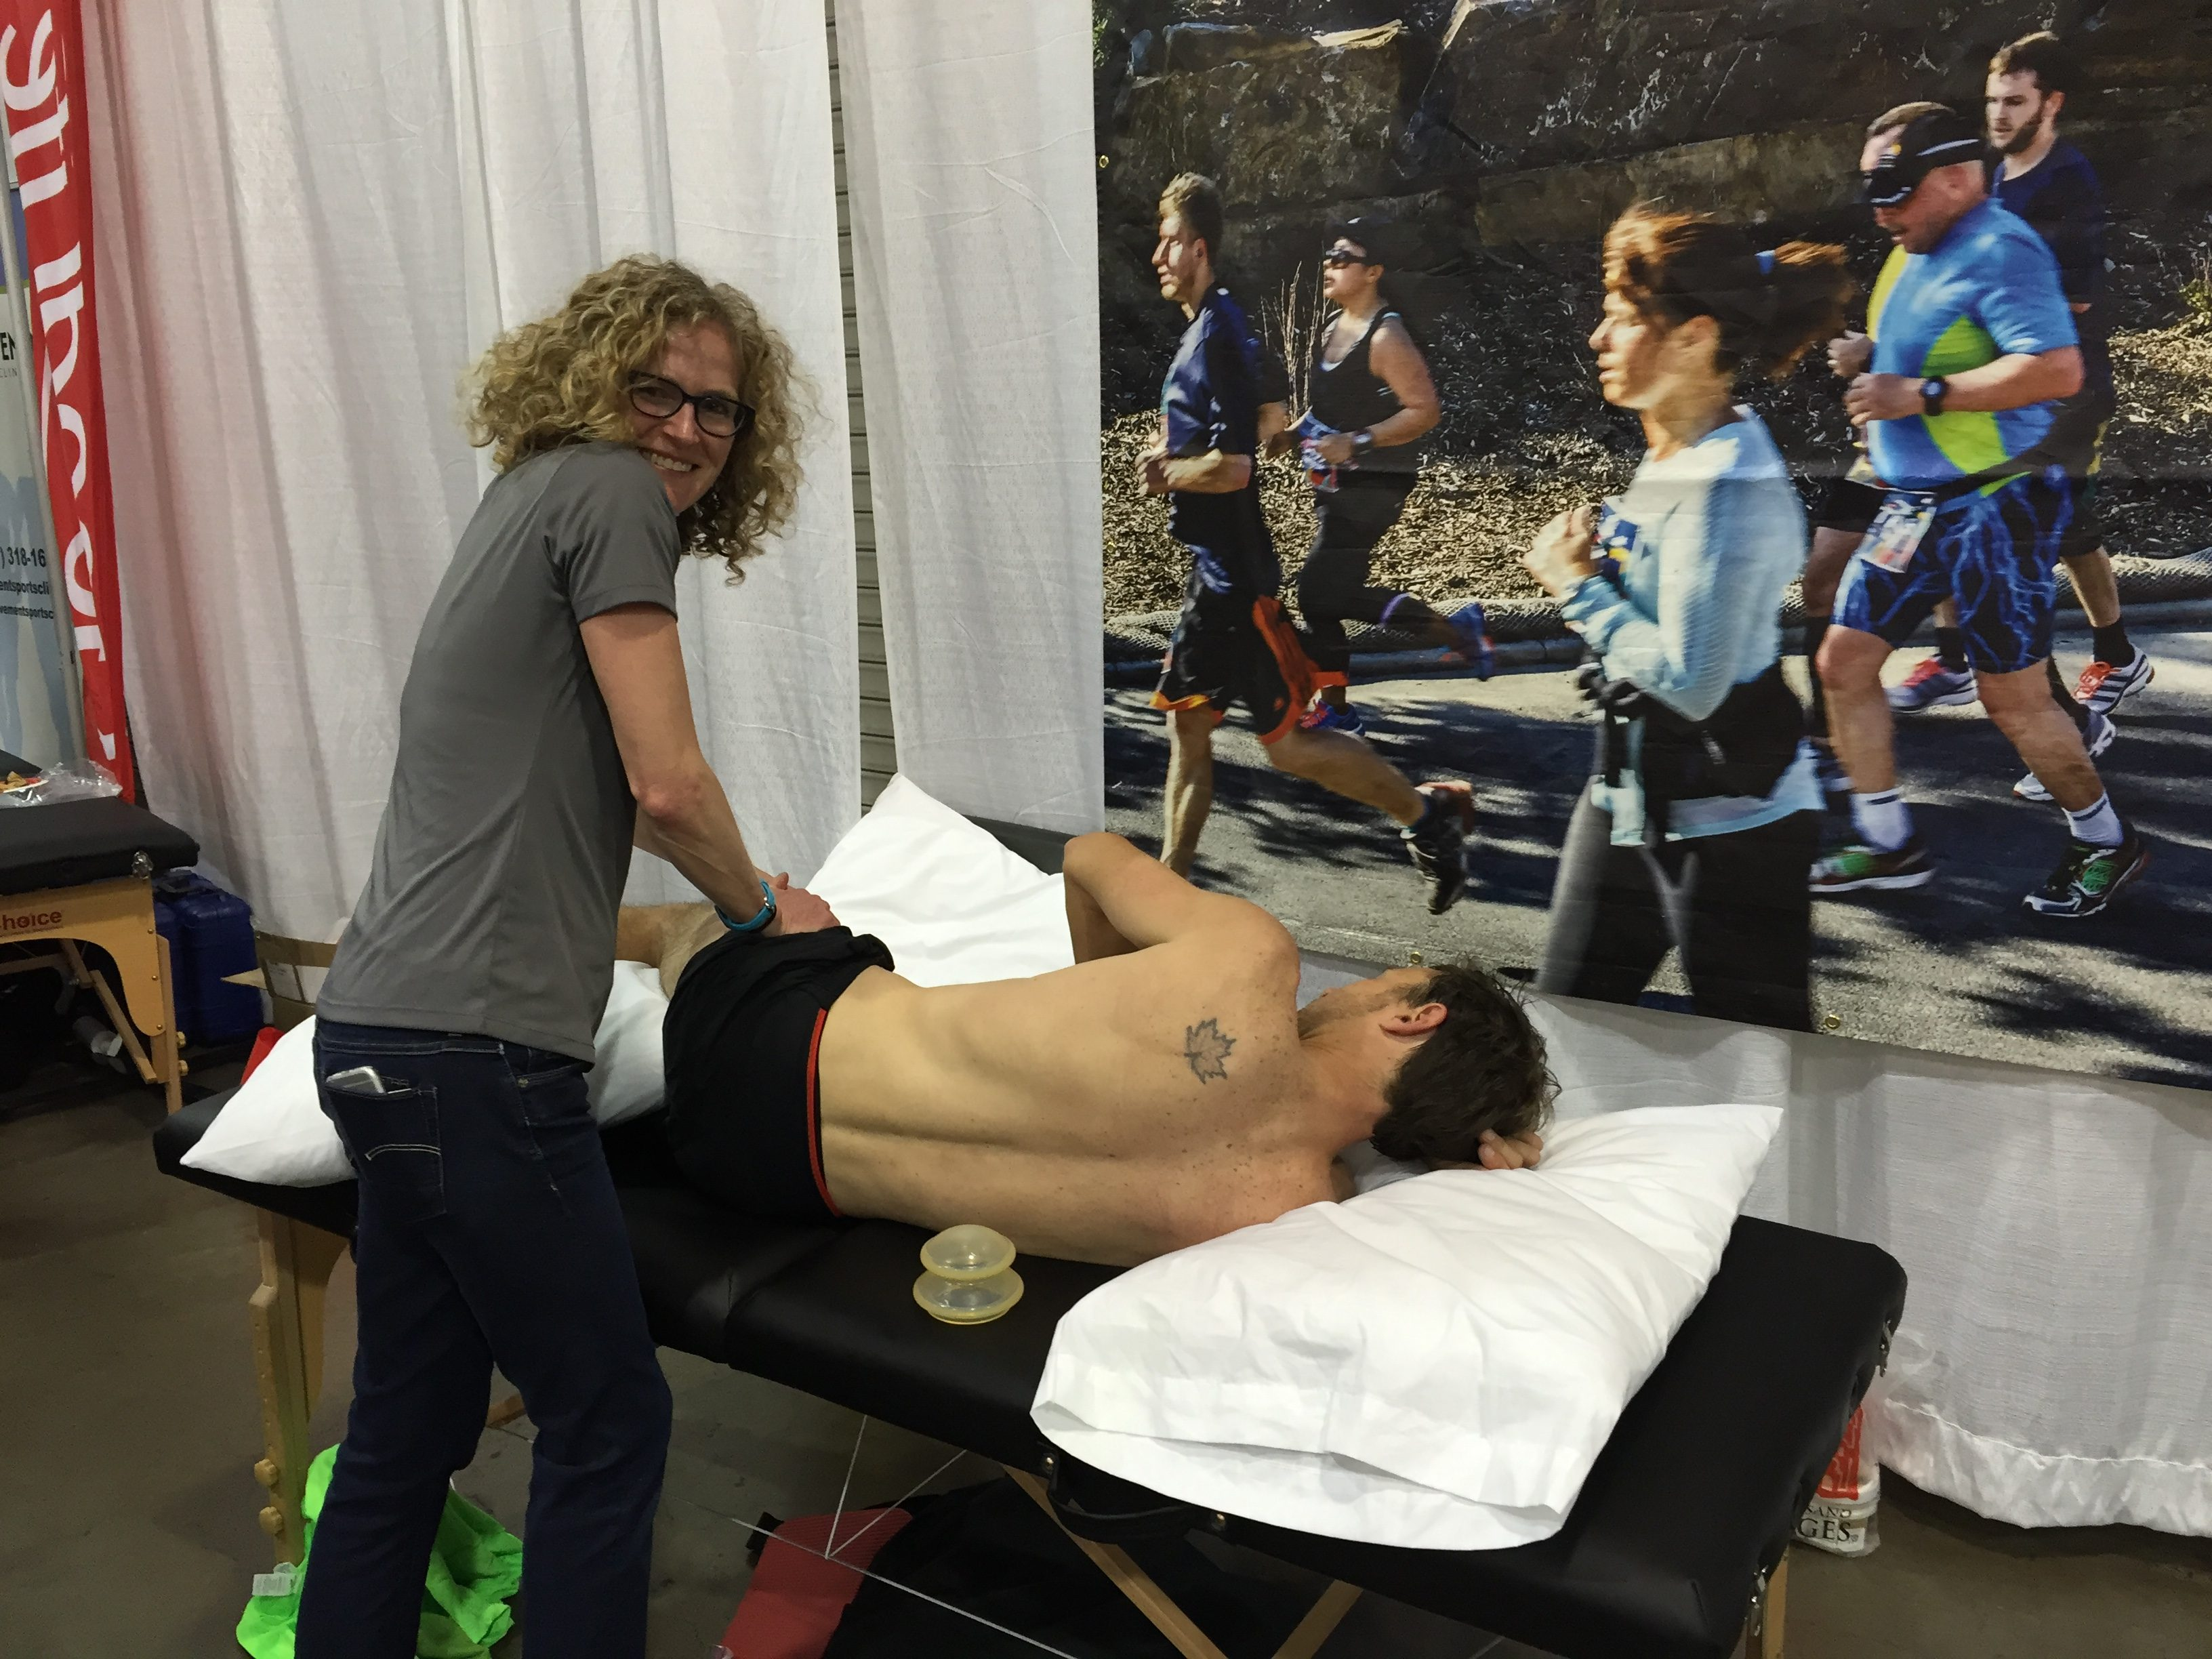 Louise Taylor providing manual therapy during the event